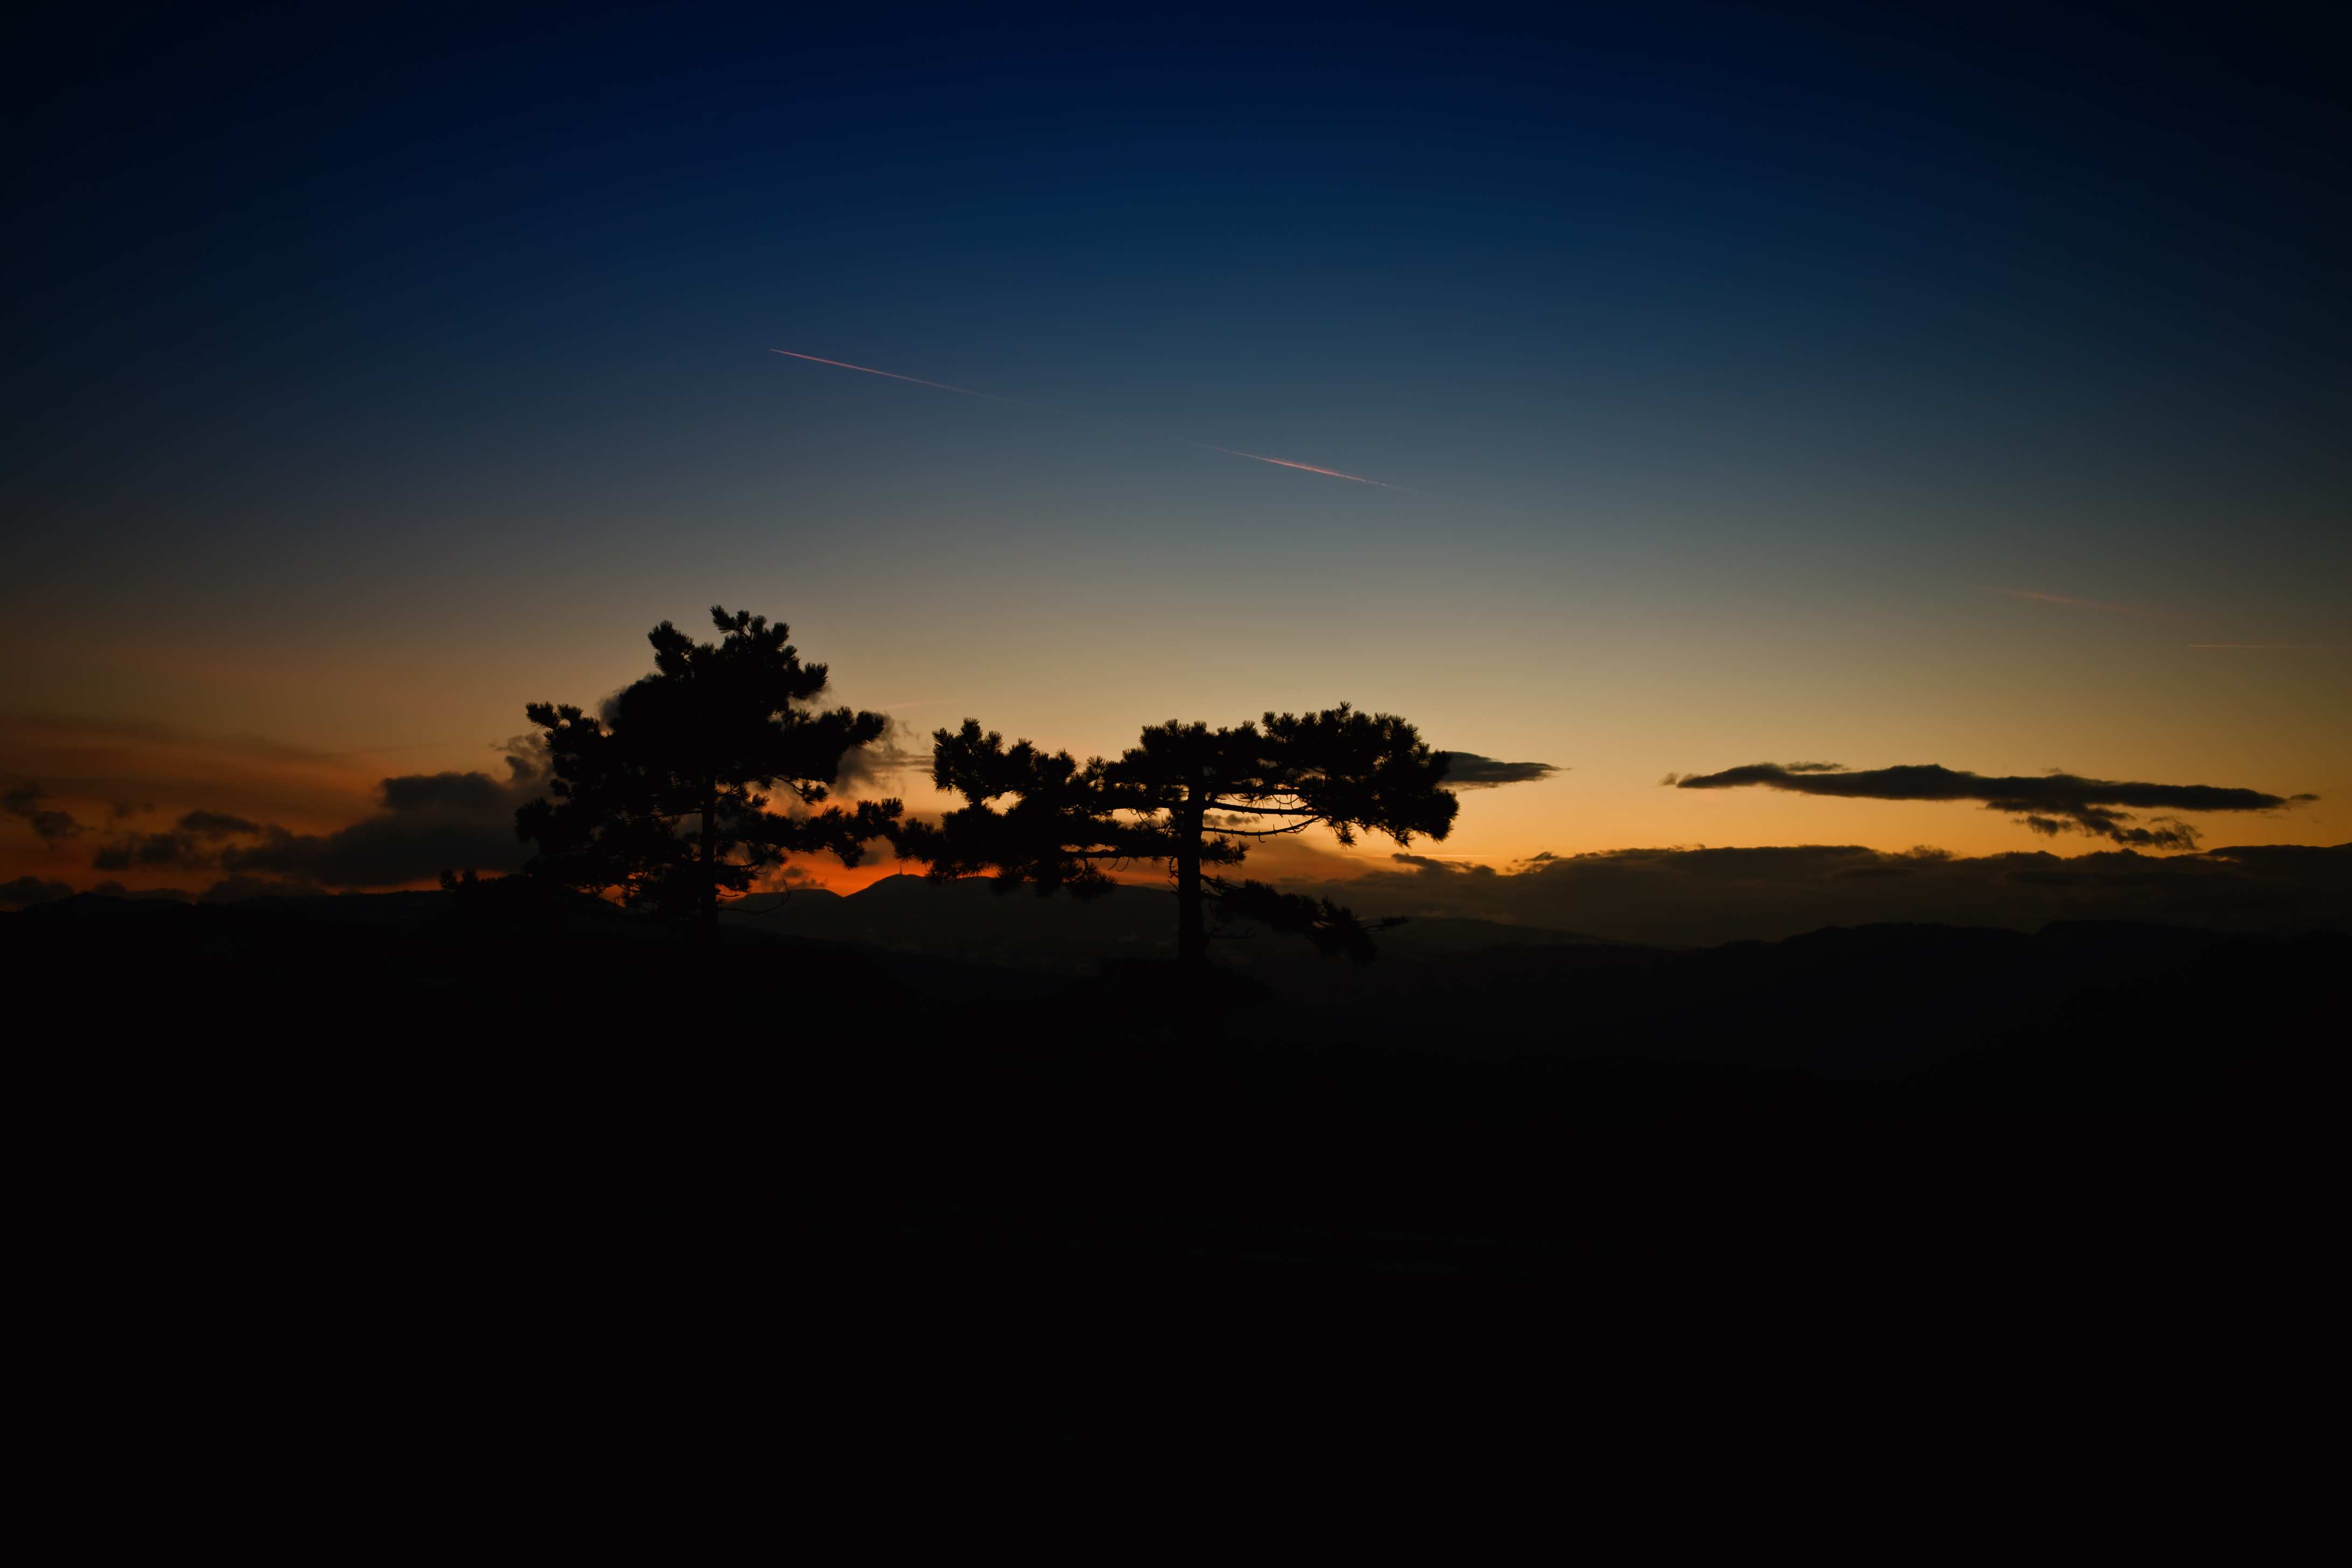 77583 free wallpaper 1080x2400 for phone, download images Trees, Sunset, Sky, Clouds, Horizon, Dark 1080x2400 for mobile